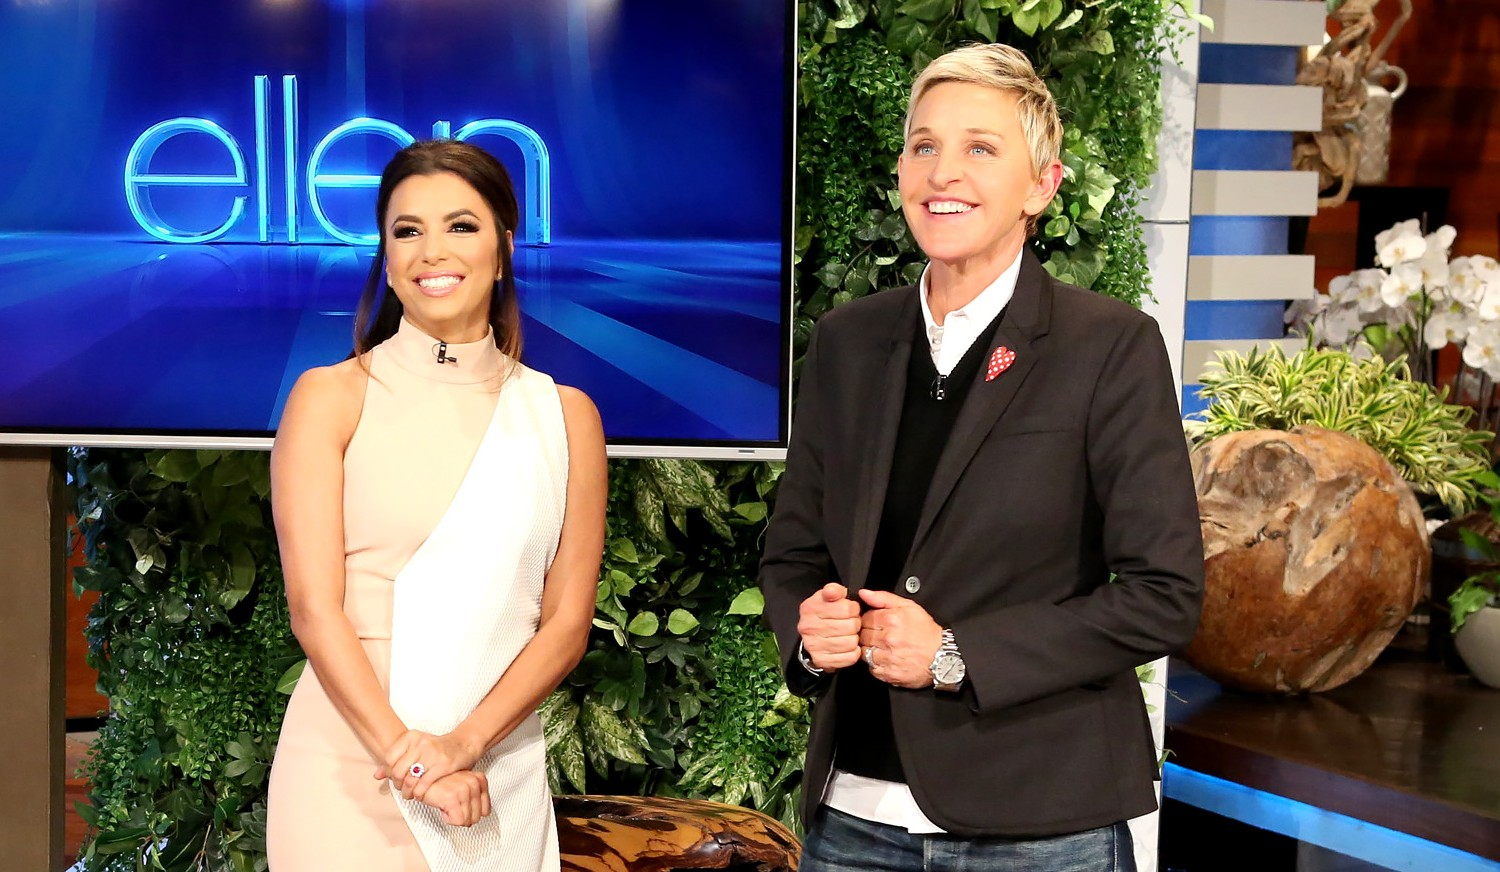 Newly engaged Eva Longoria on Ellen DeGeneres Show